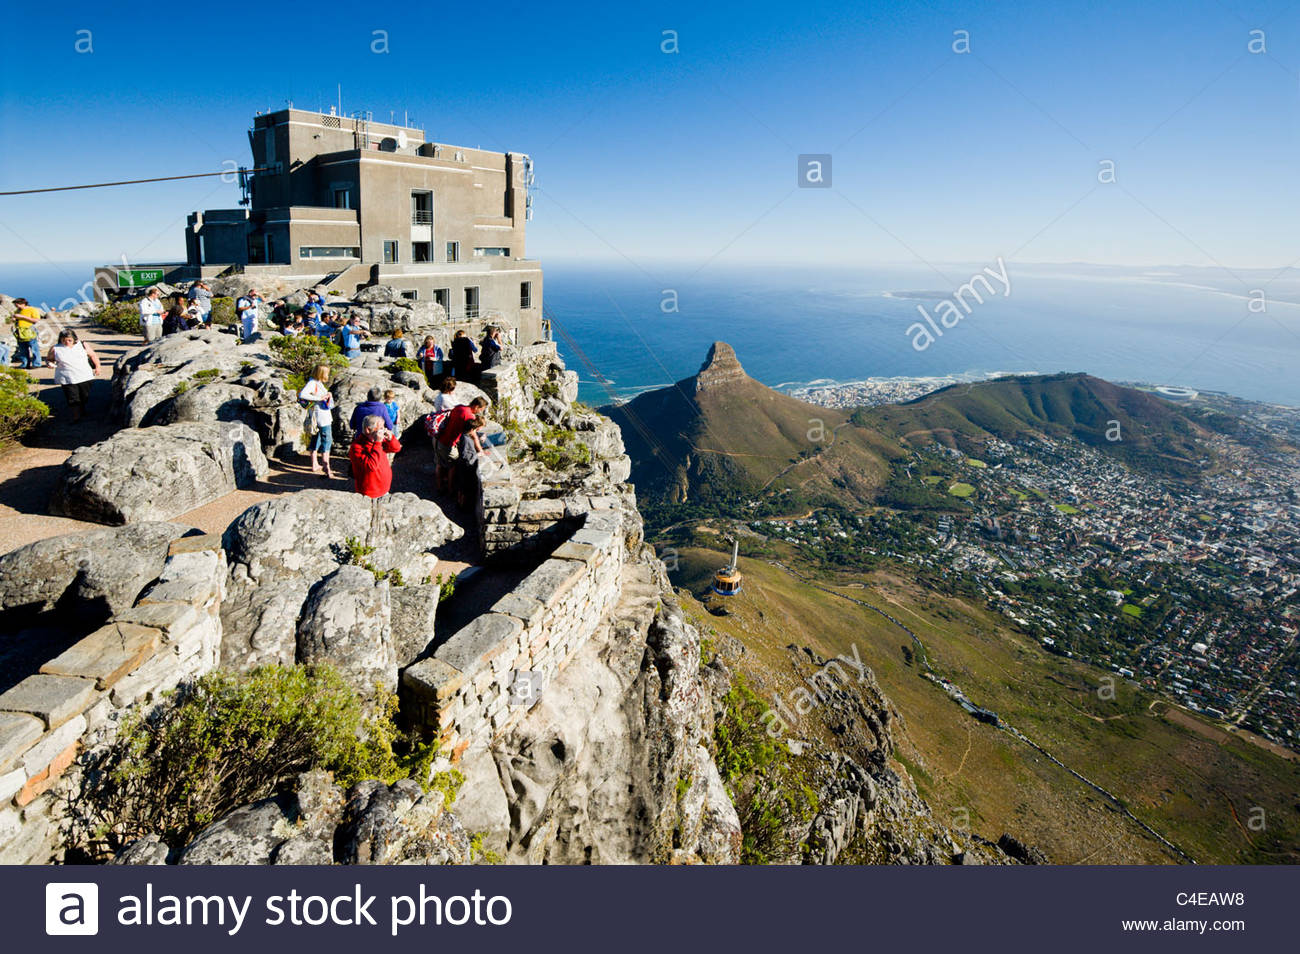 The cable car station on Table Mountain, Cape Town, South Africa - Stock Image